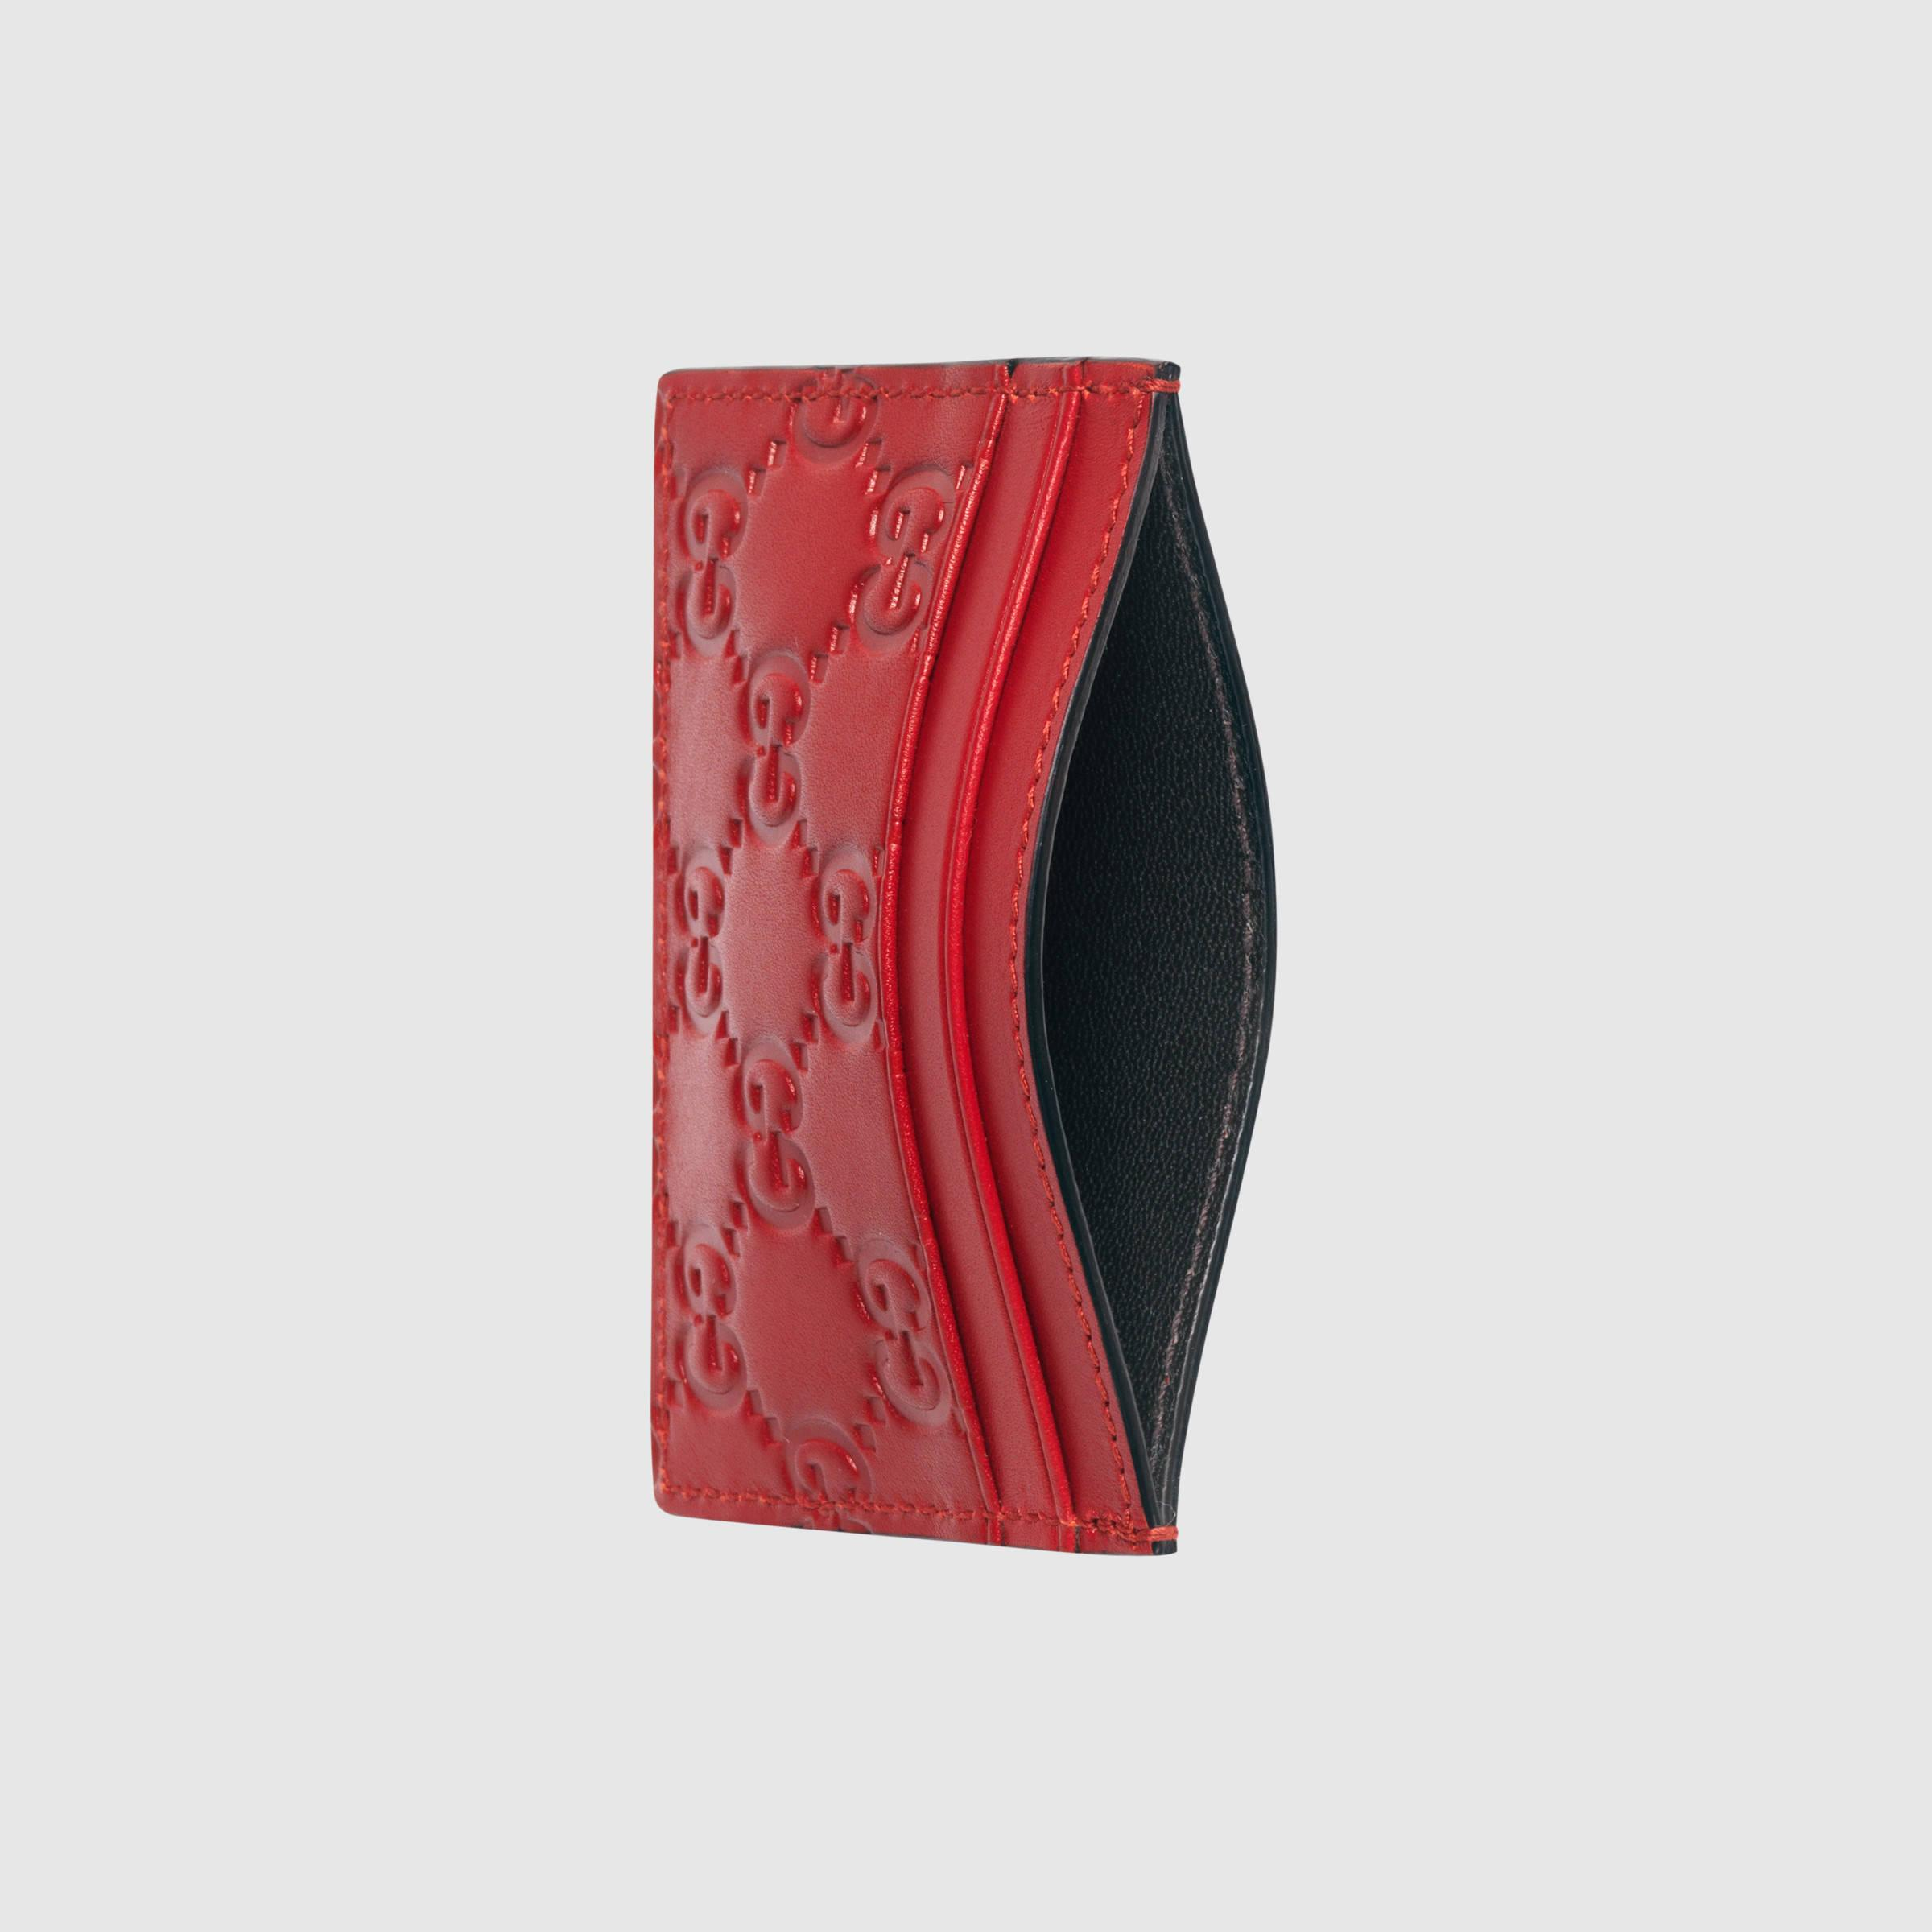 b9aecc4569ec97 Gucci Card Wallet Uk | Stanford Center for Opportunity Policy in ...